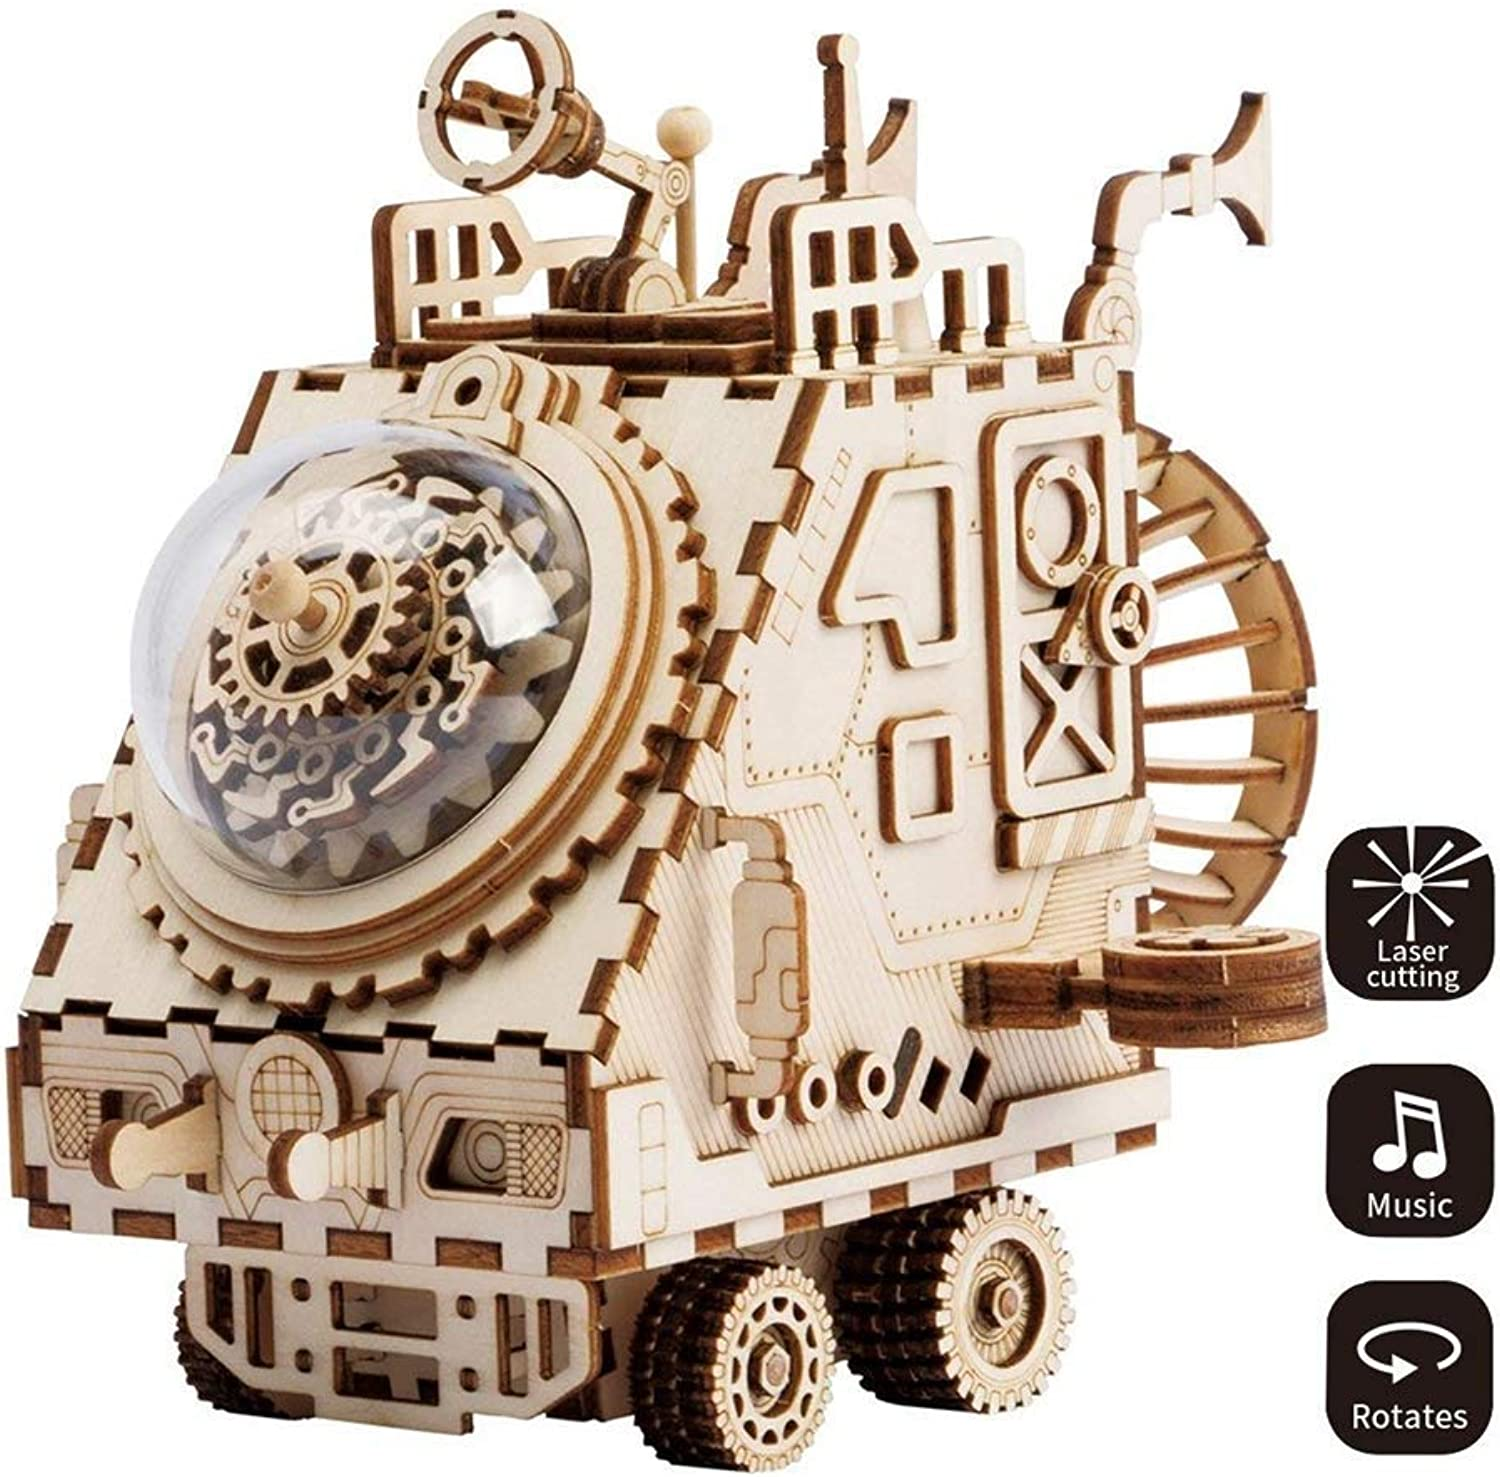 JAYE 3D DIY Wooden Puzzle Building Blocks Mechanical Transmission Toys, Space Exploration Vehicle Clockwork Music Box Kids Gift, Girls & Boys Birthday and Holiday Present